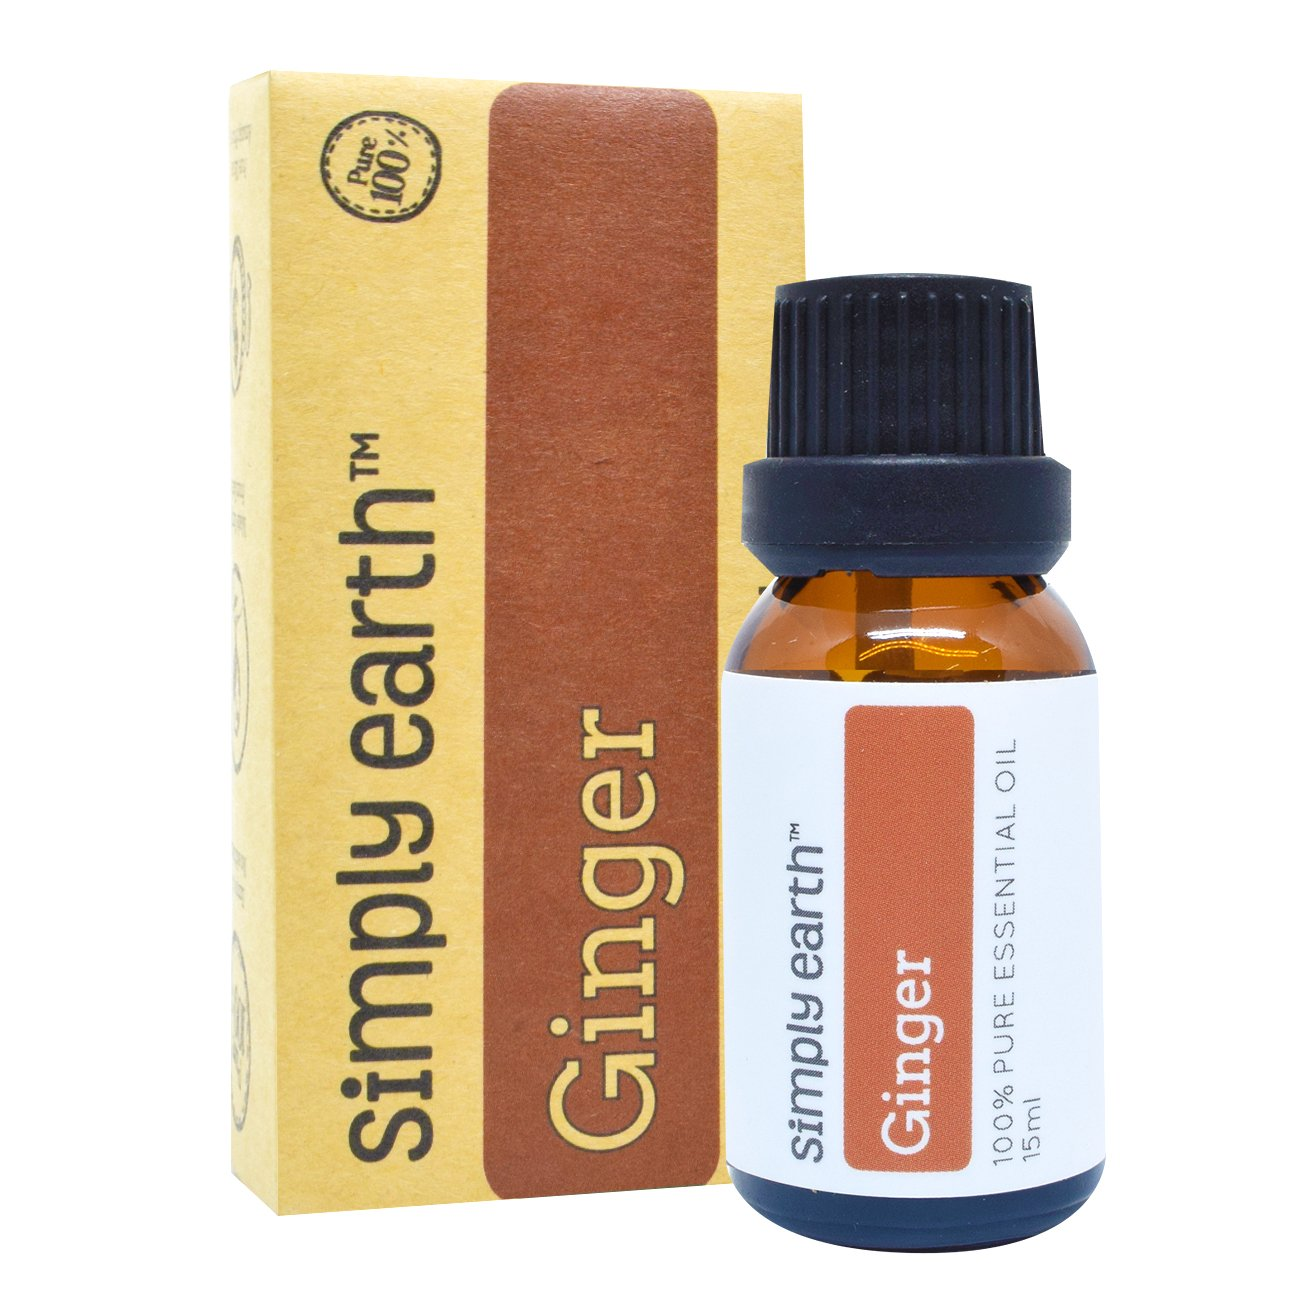 Ginger Essential Oil by Simply Earth (Ginger Root) - 15 ml, 100% Pure Therapeutic Grade